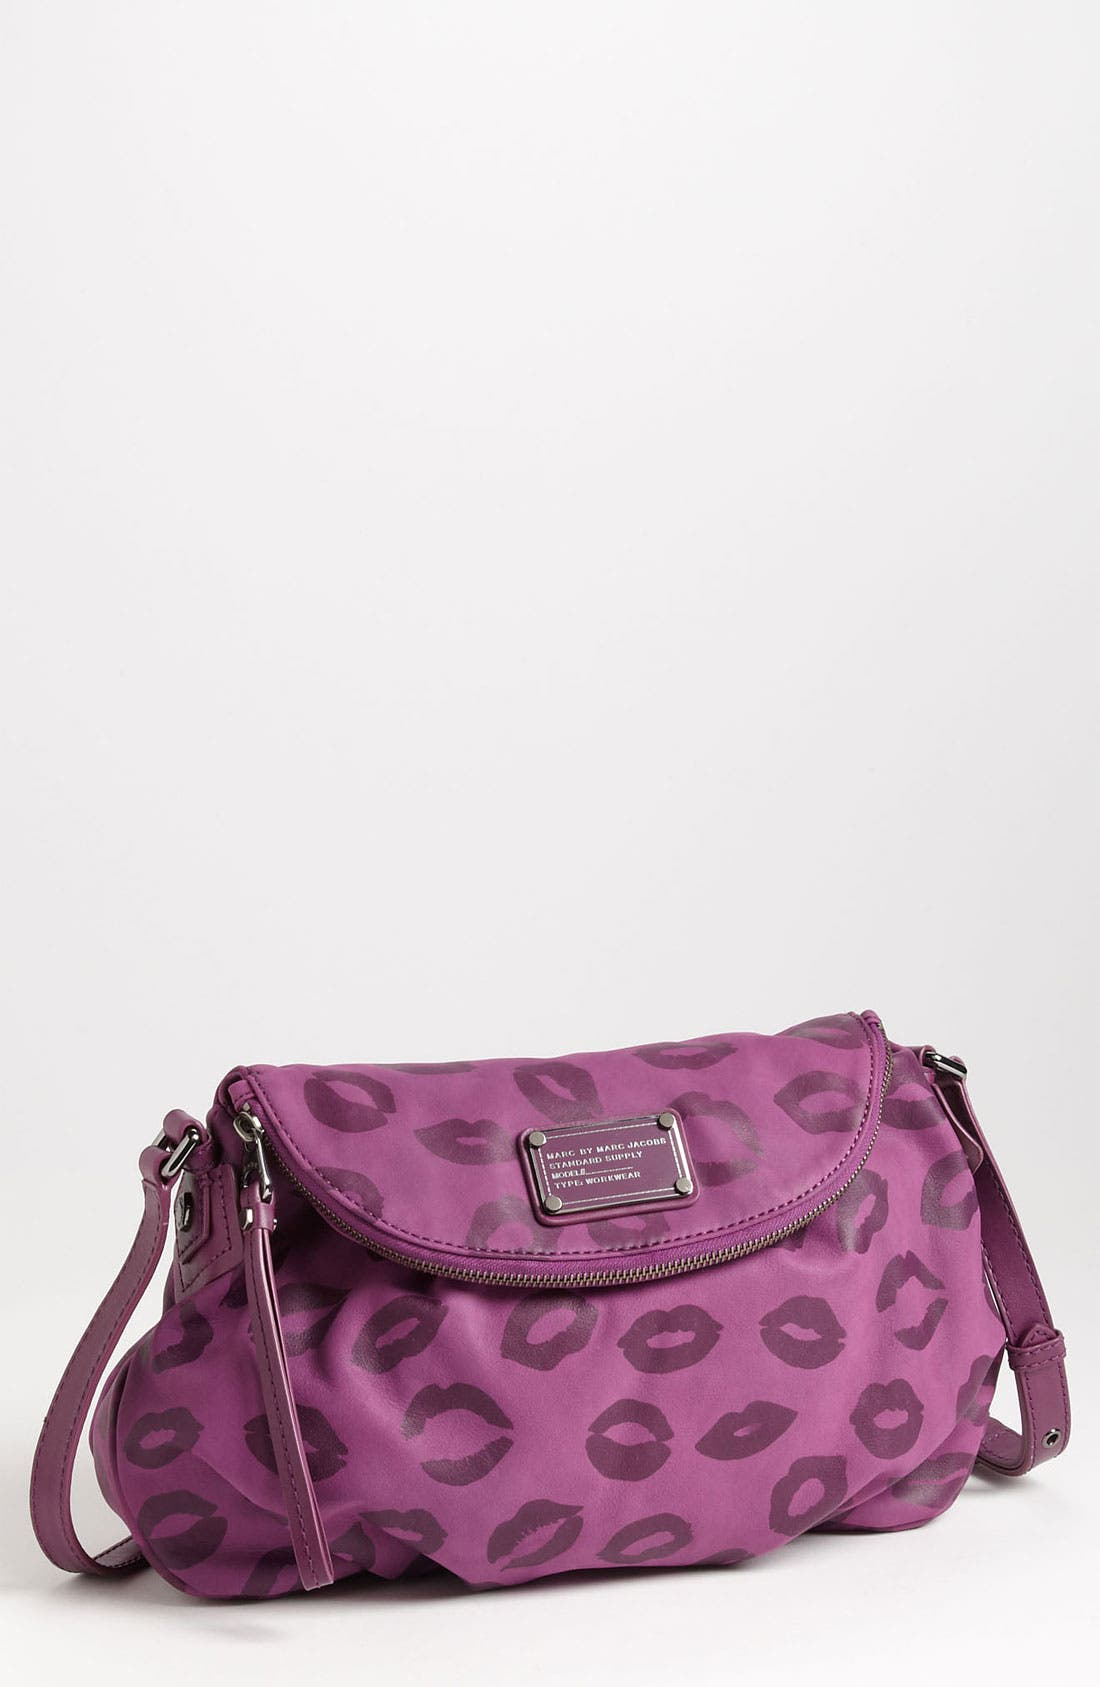 Alternate Image 1 Selected - MARC BY MARC JACOBS 'Classic Q Natasha - Smack' Leather Crossbody Bag